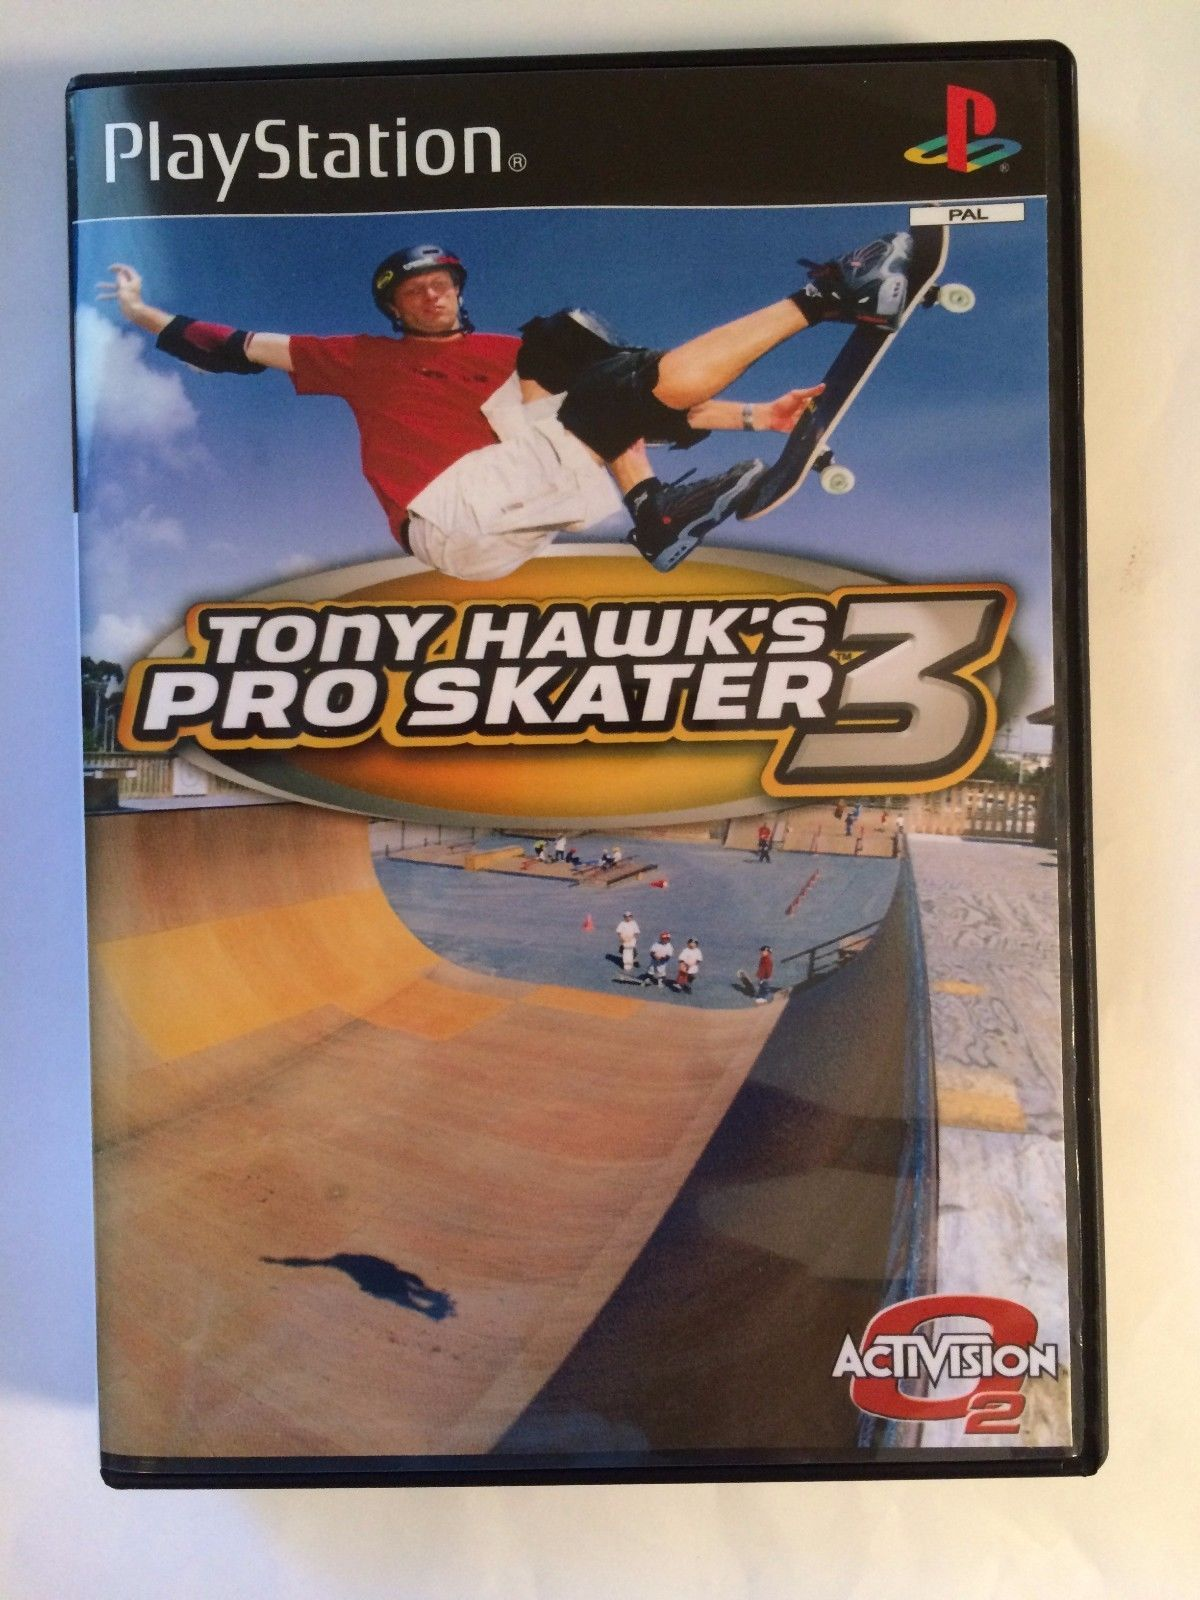 Tony Hawk's Pro Skater 3 - Playstation - Replacement Case - No Game